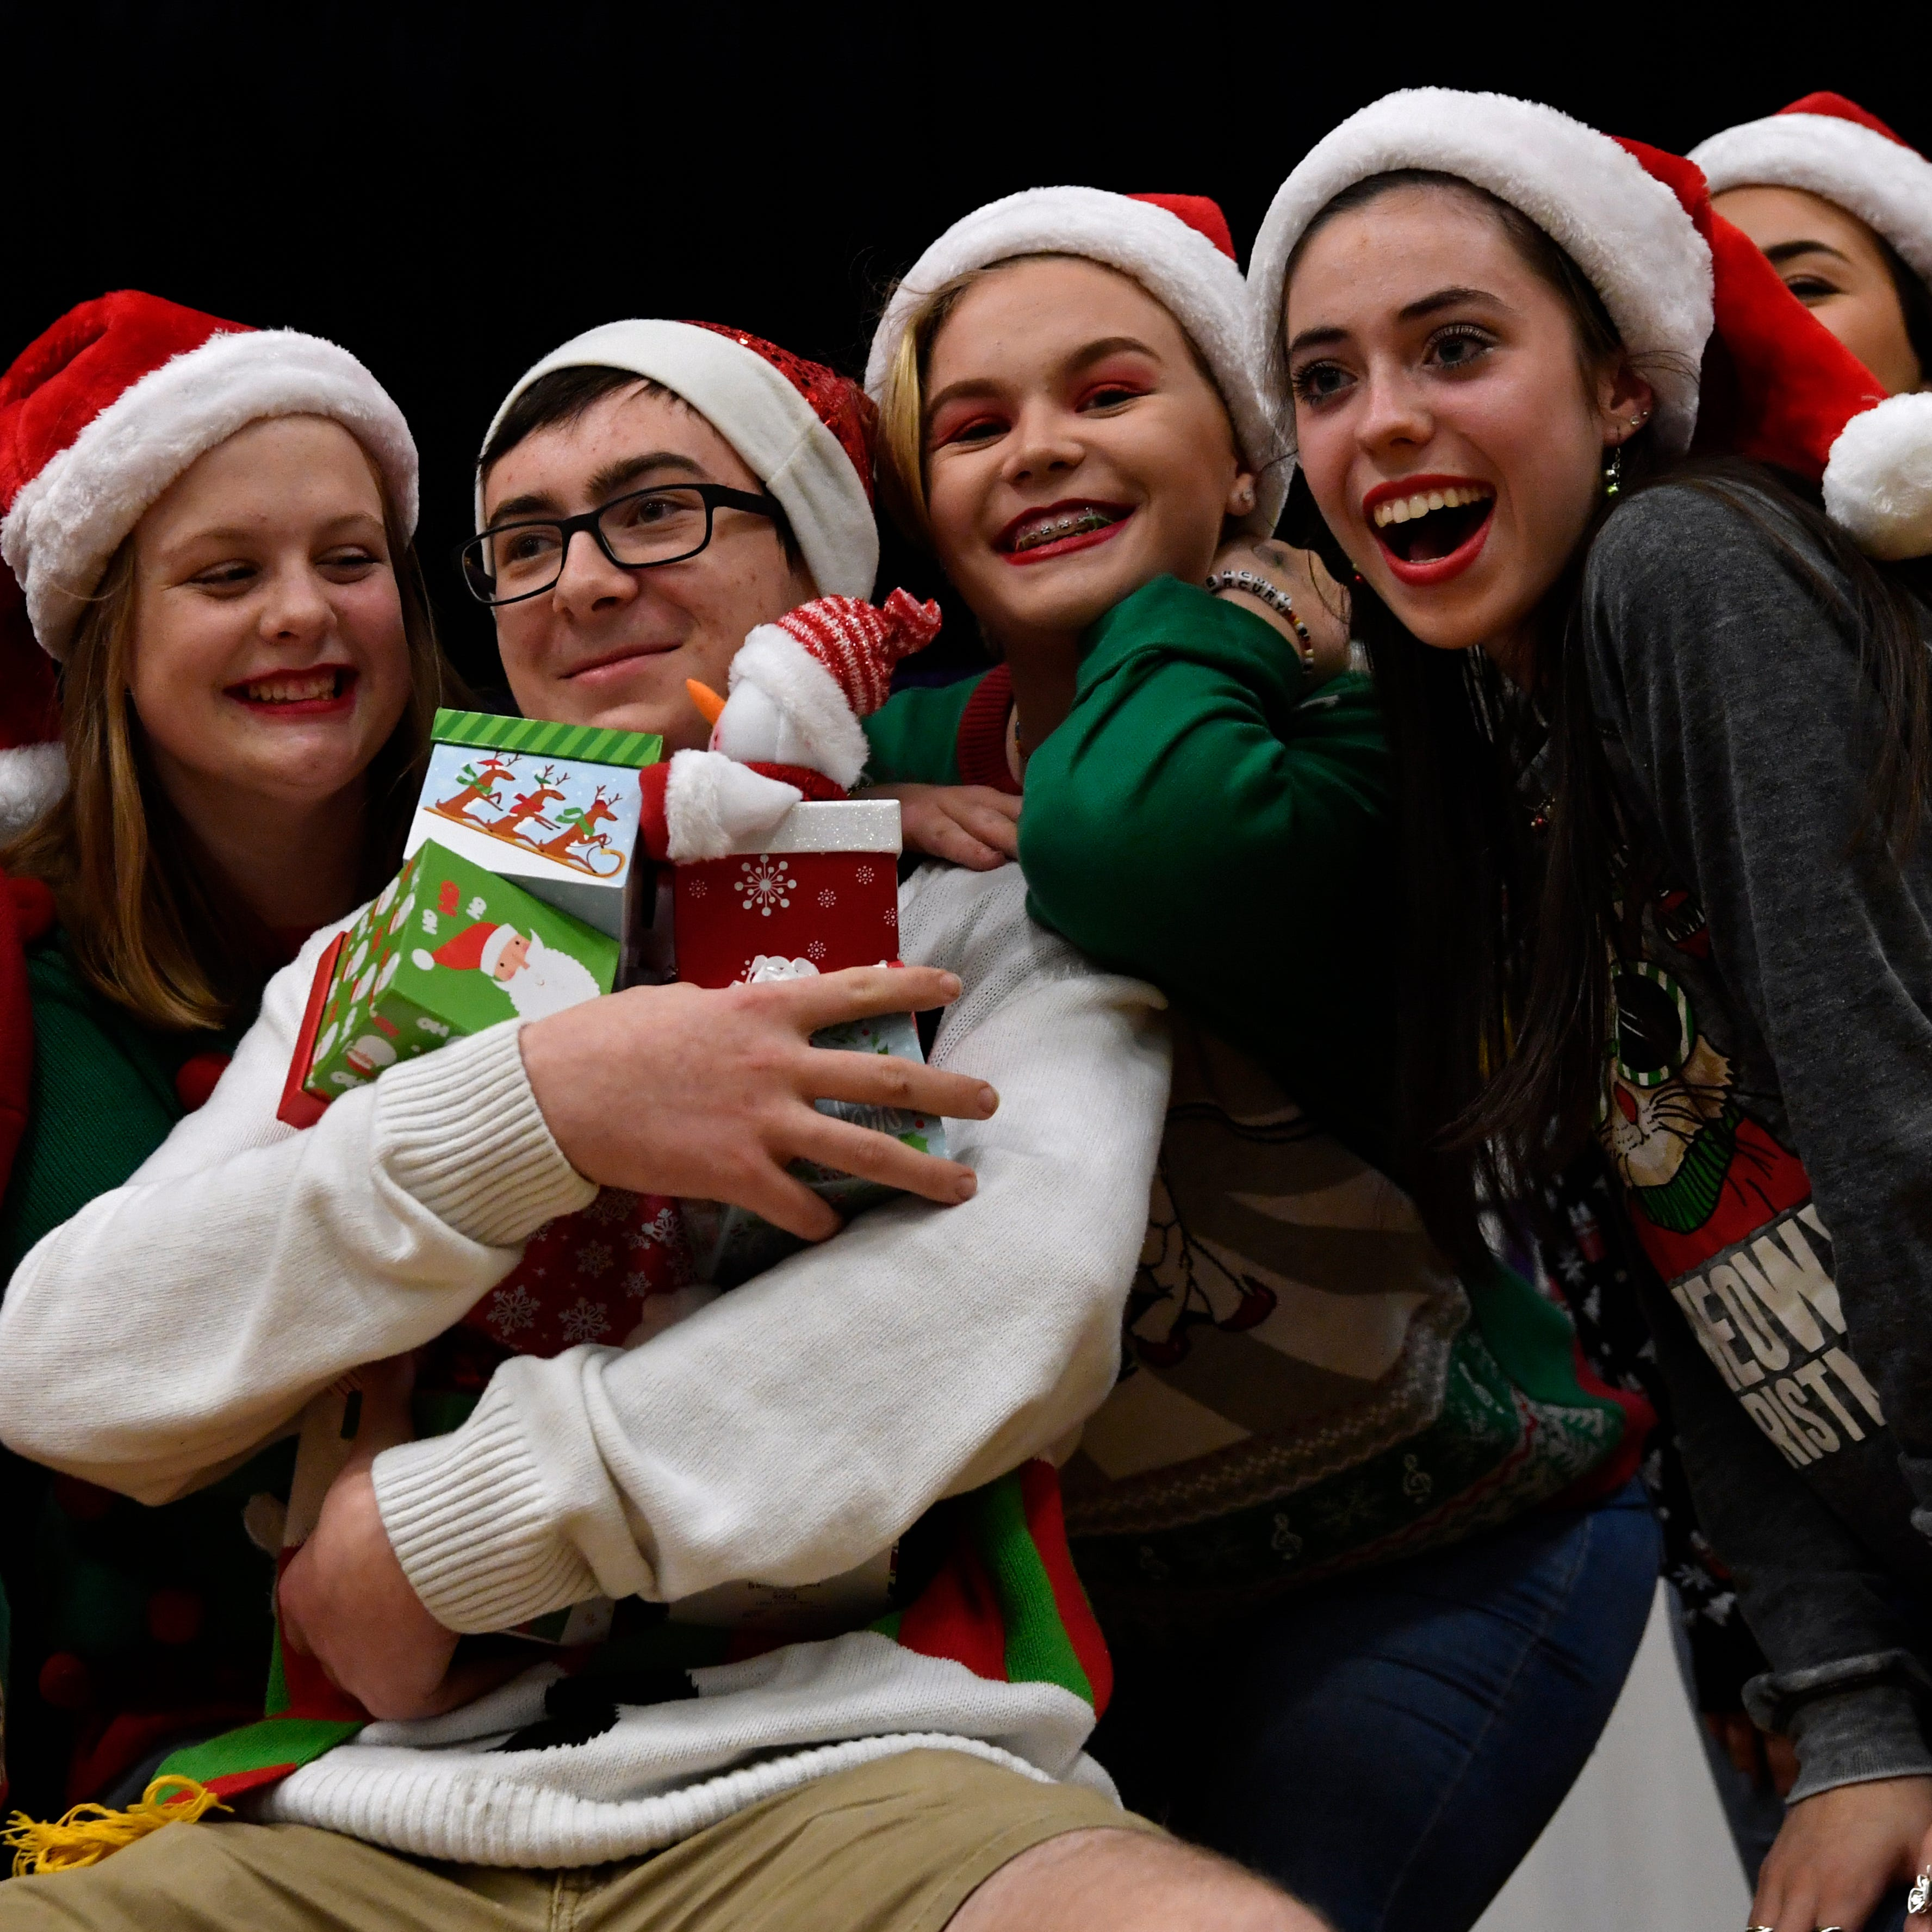 """Junior Alex Withers is surrounded by members of VocalPoint, the show choir at Wylie High School, during their performance of """"Santa Baby"""" at the Bulldog Christmas Market Thursday Nov. 29, 2018. This was the second year for the market which featured student-made products for sale in the high school's cafeteria."""